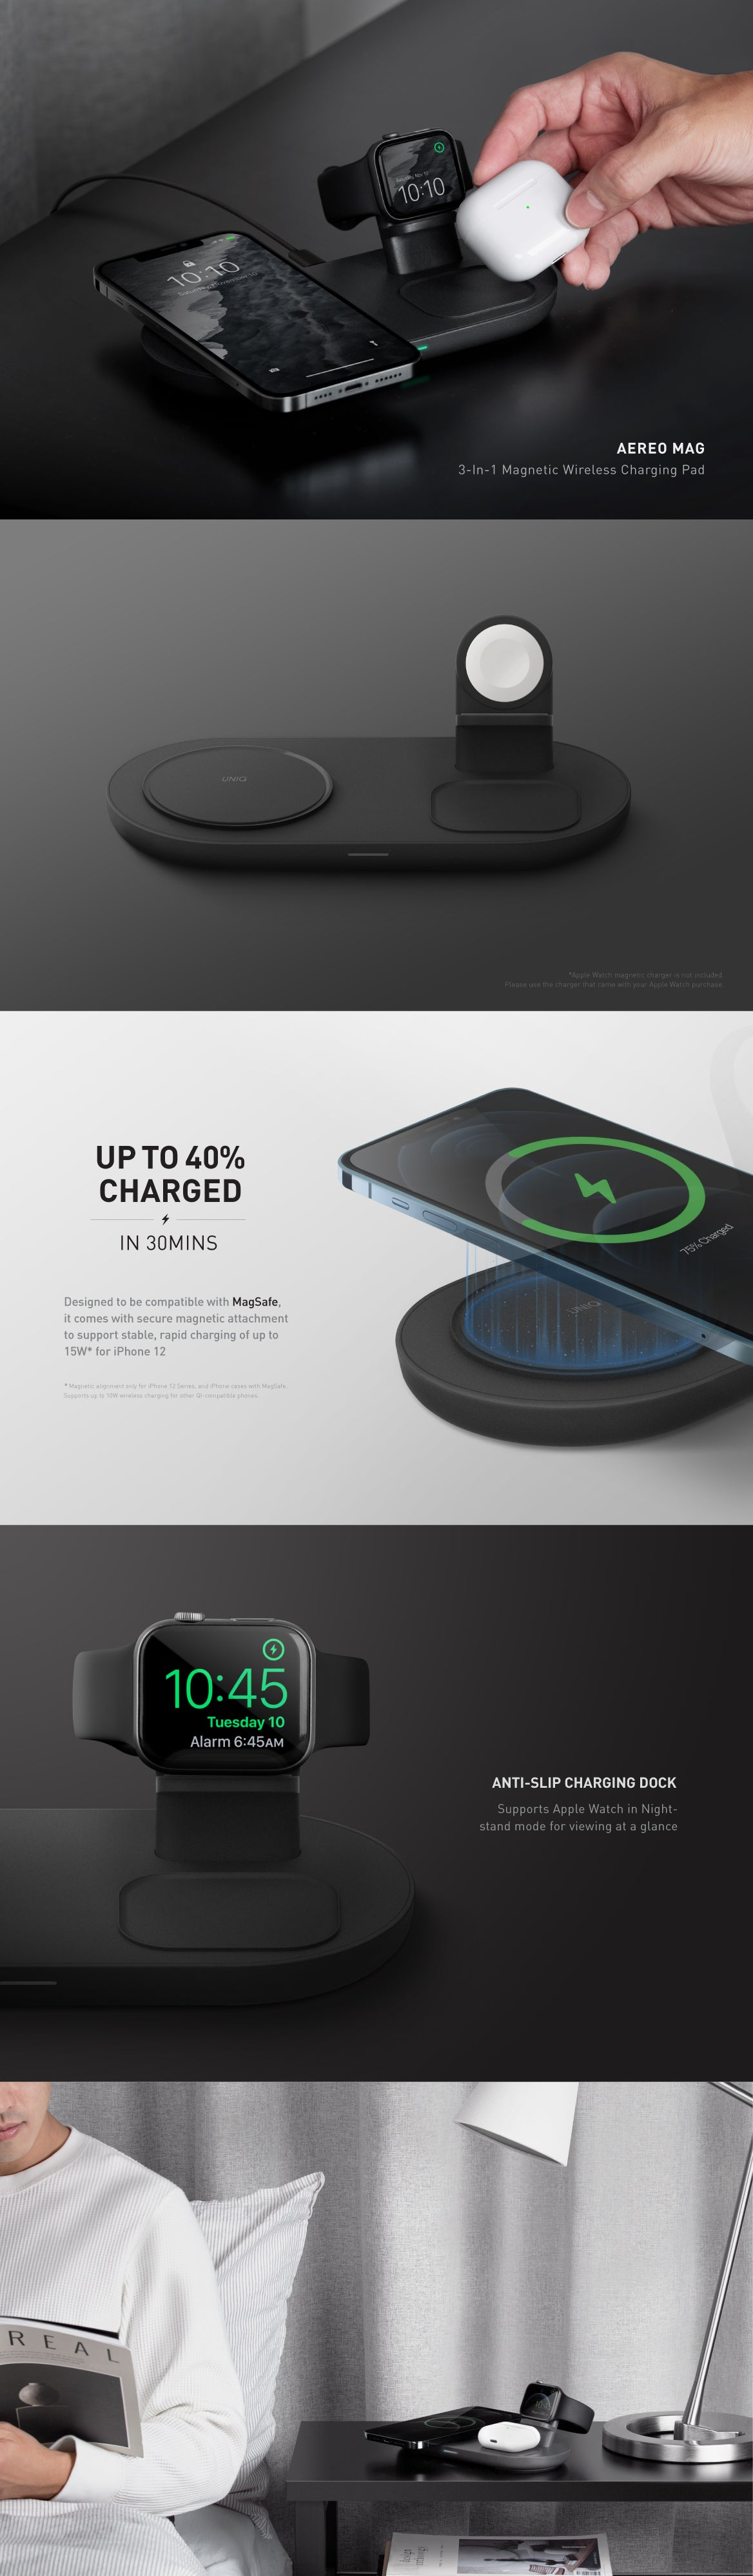 UNIQ Aereo Mag 3-in-1 Magnetic Wireless Charging Pad For AirPods, Apple Watch and iPhone